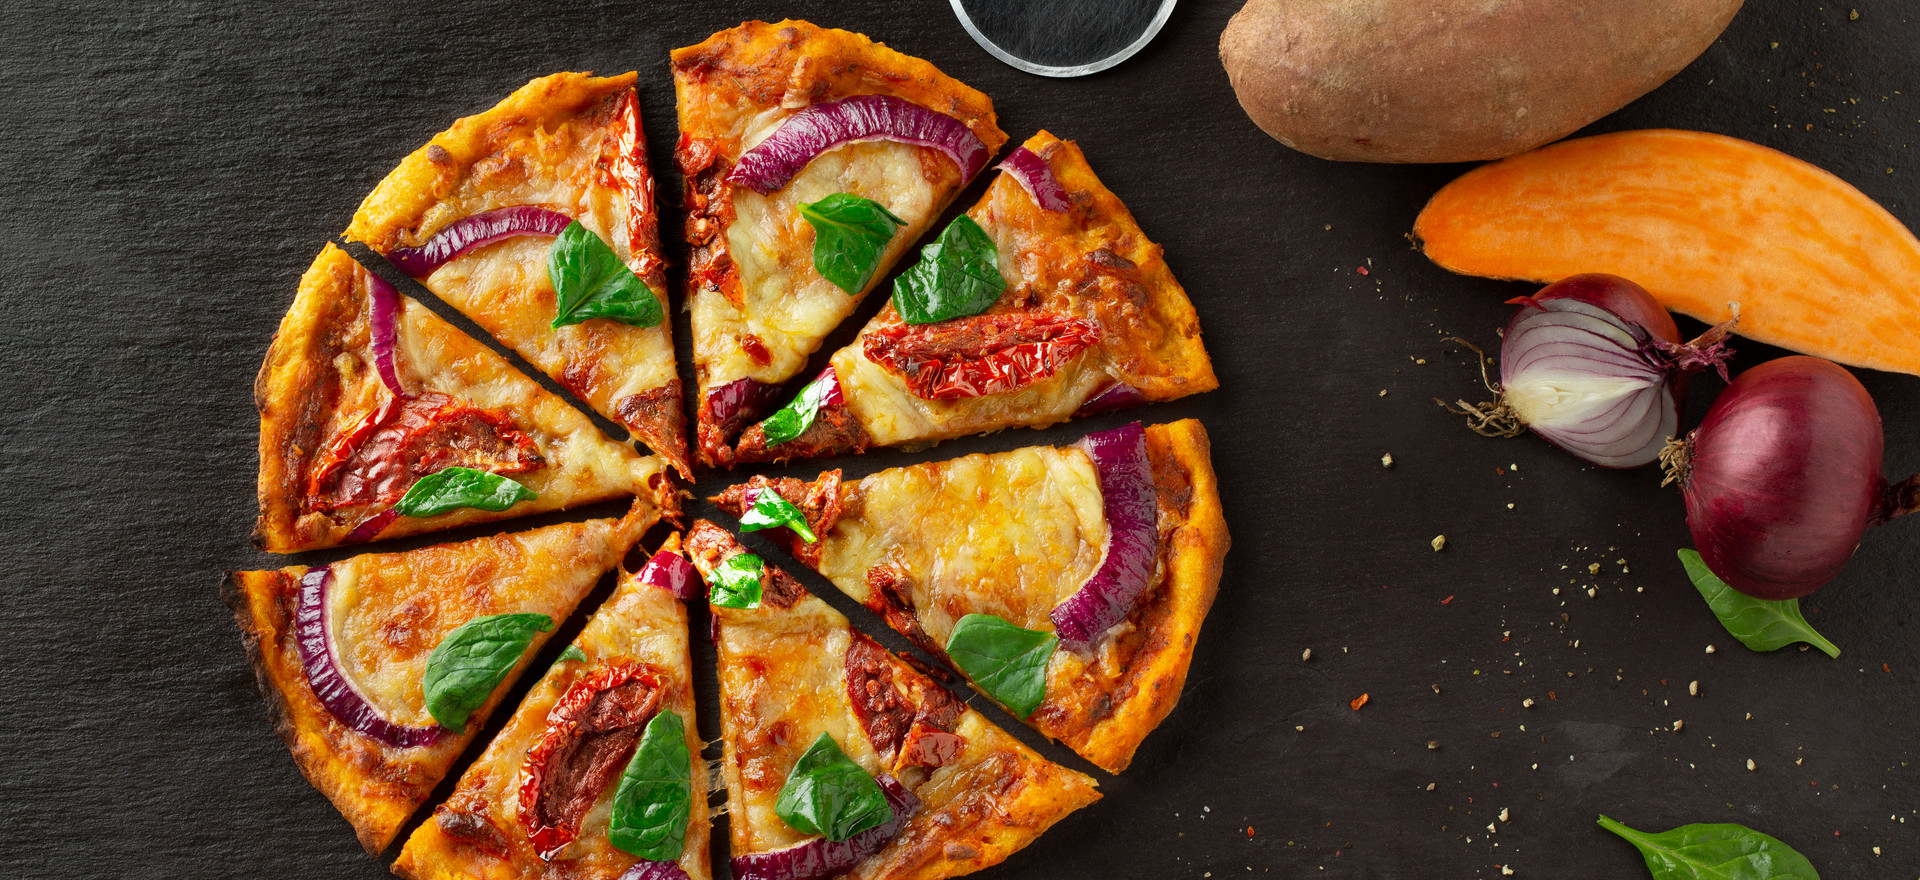 Sundried Tomato, Red Onion & Spinach